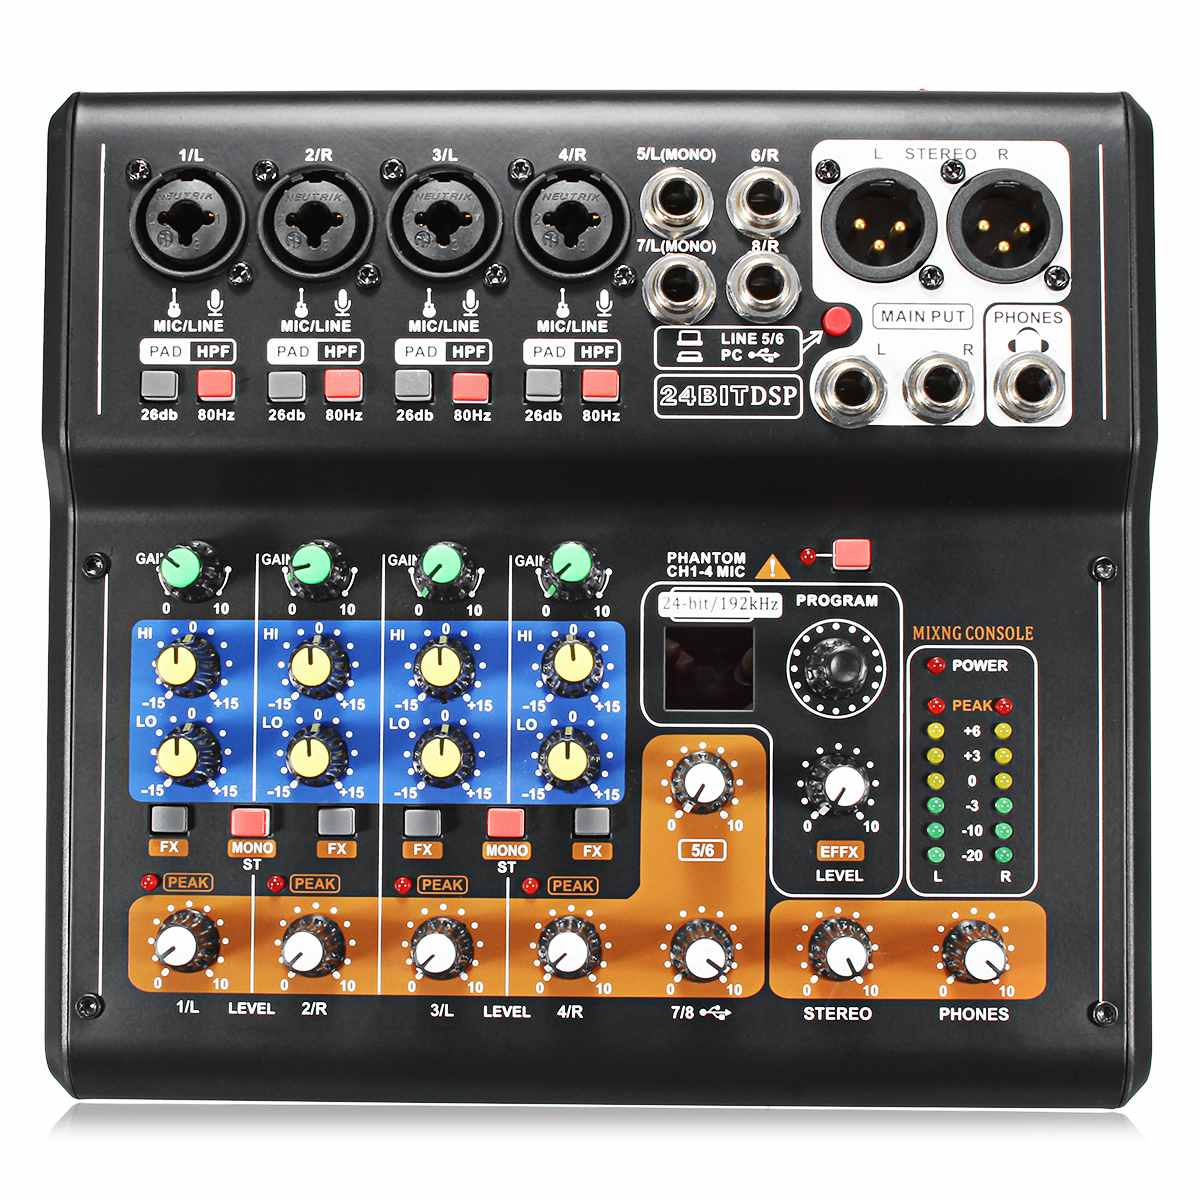 8 Channel 48V Professional Mini Portable Mixer Live Studio Audio Karaoke Mixer USB DJ Sound Mixing Console for Family KTV Party ct 80s usb di mixer professional amplifier mixer 8 channel stage audio mixer karaoke mixer mixing console mesa dj preamplifier